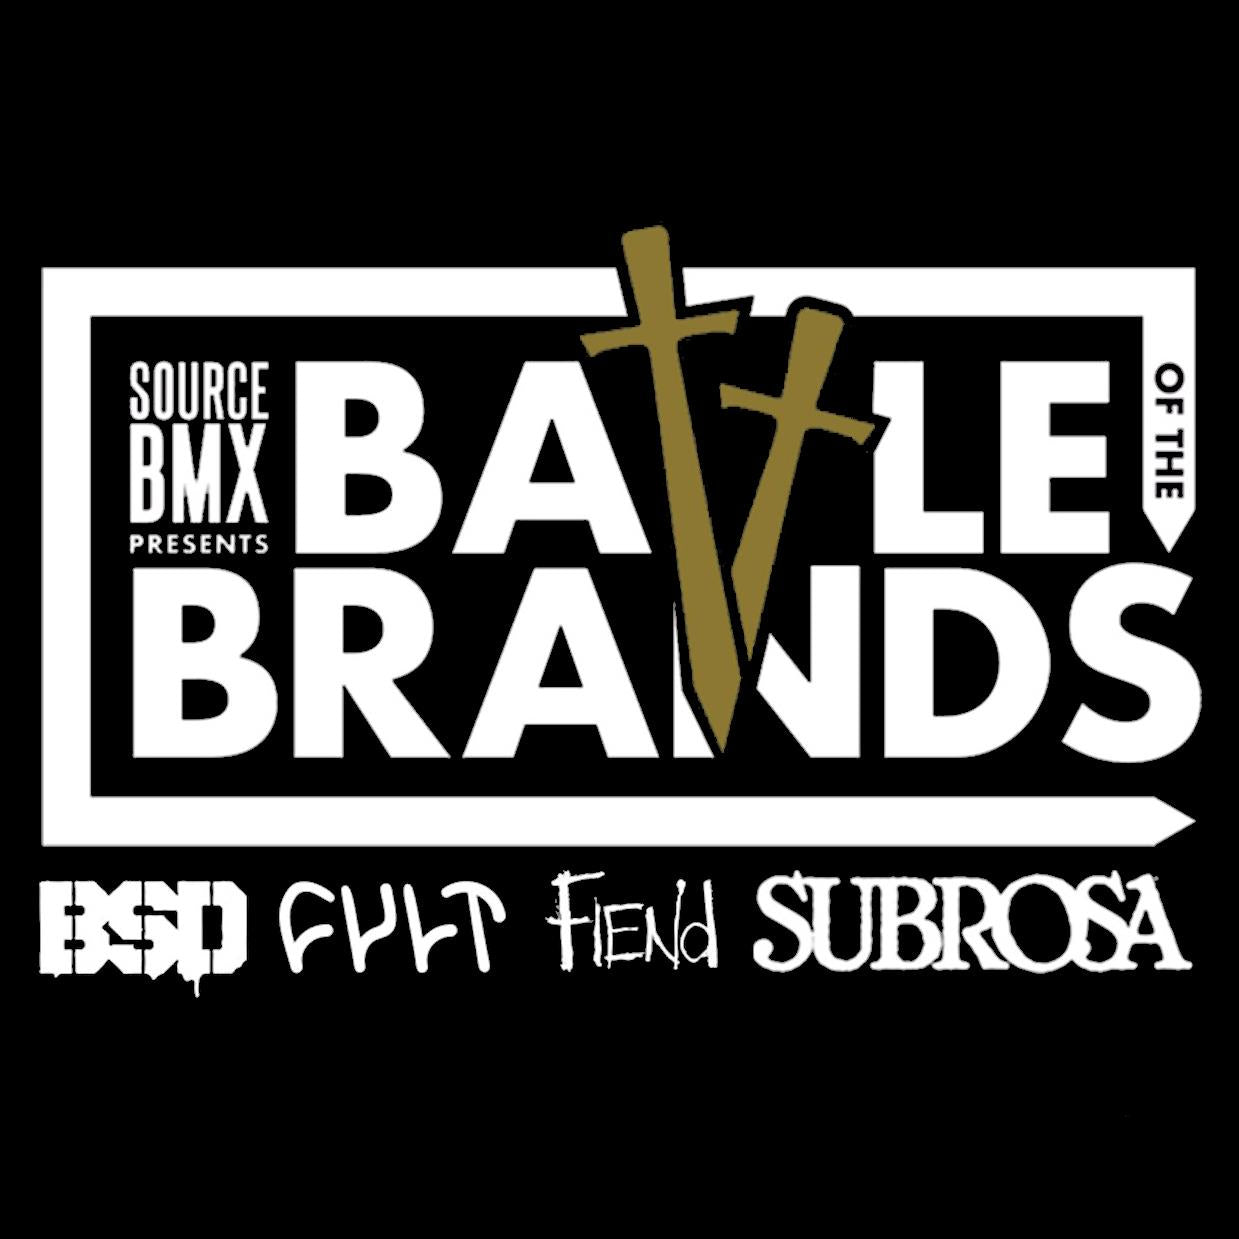 Source Battle of the Brands DVD